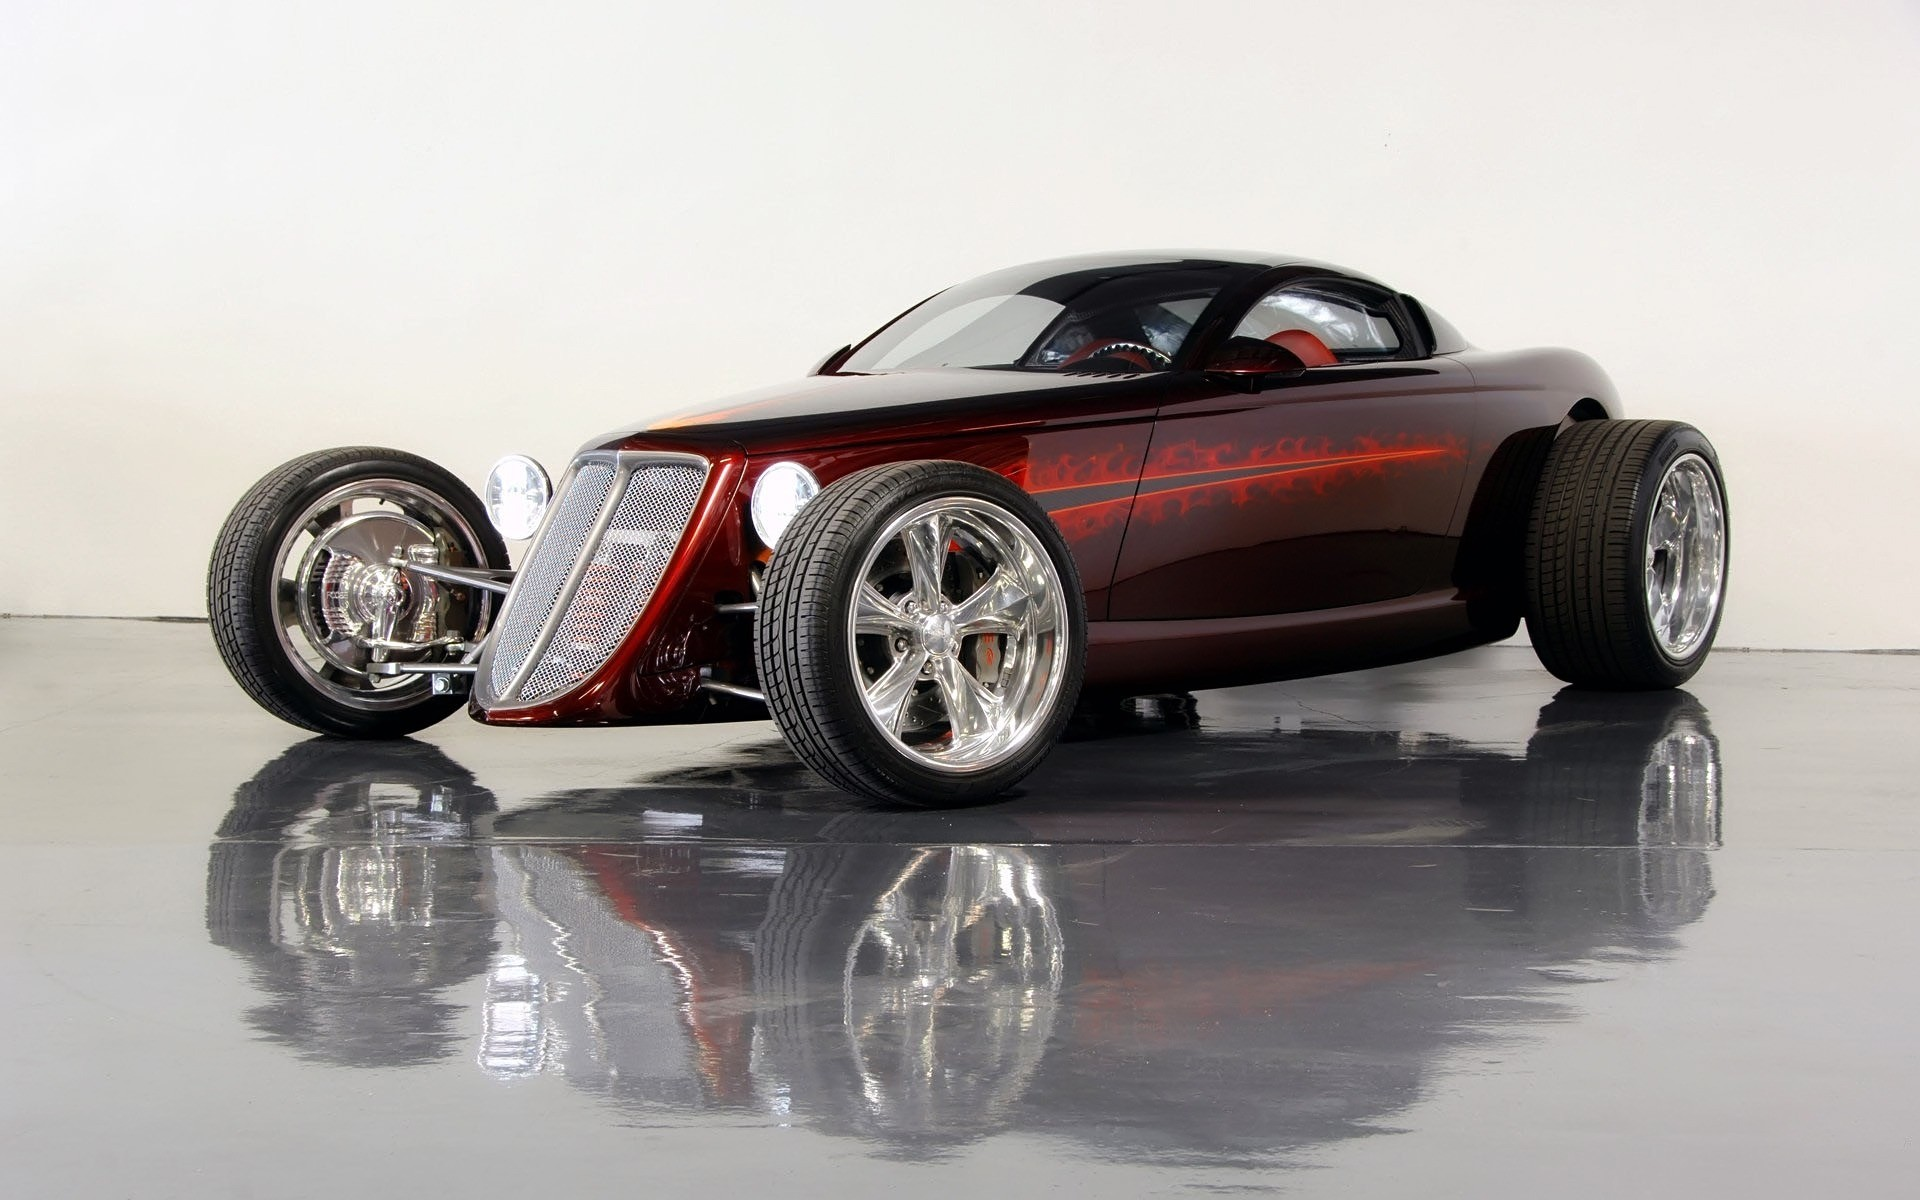 1920x1200 Foose Coupe Wallpaper Hot Rods Cars Wallpapers